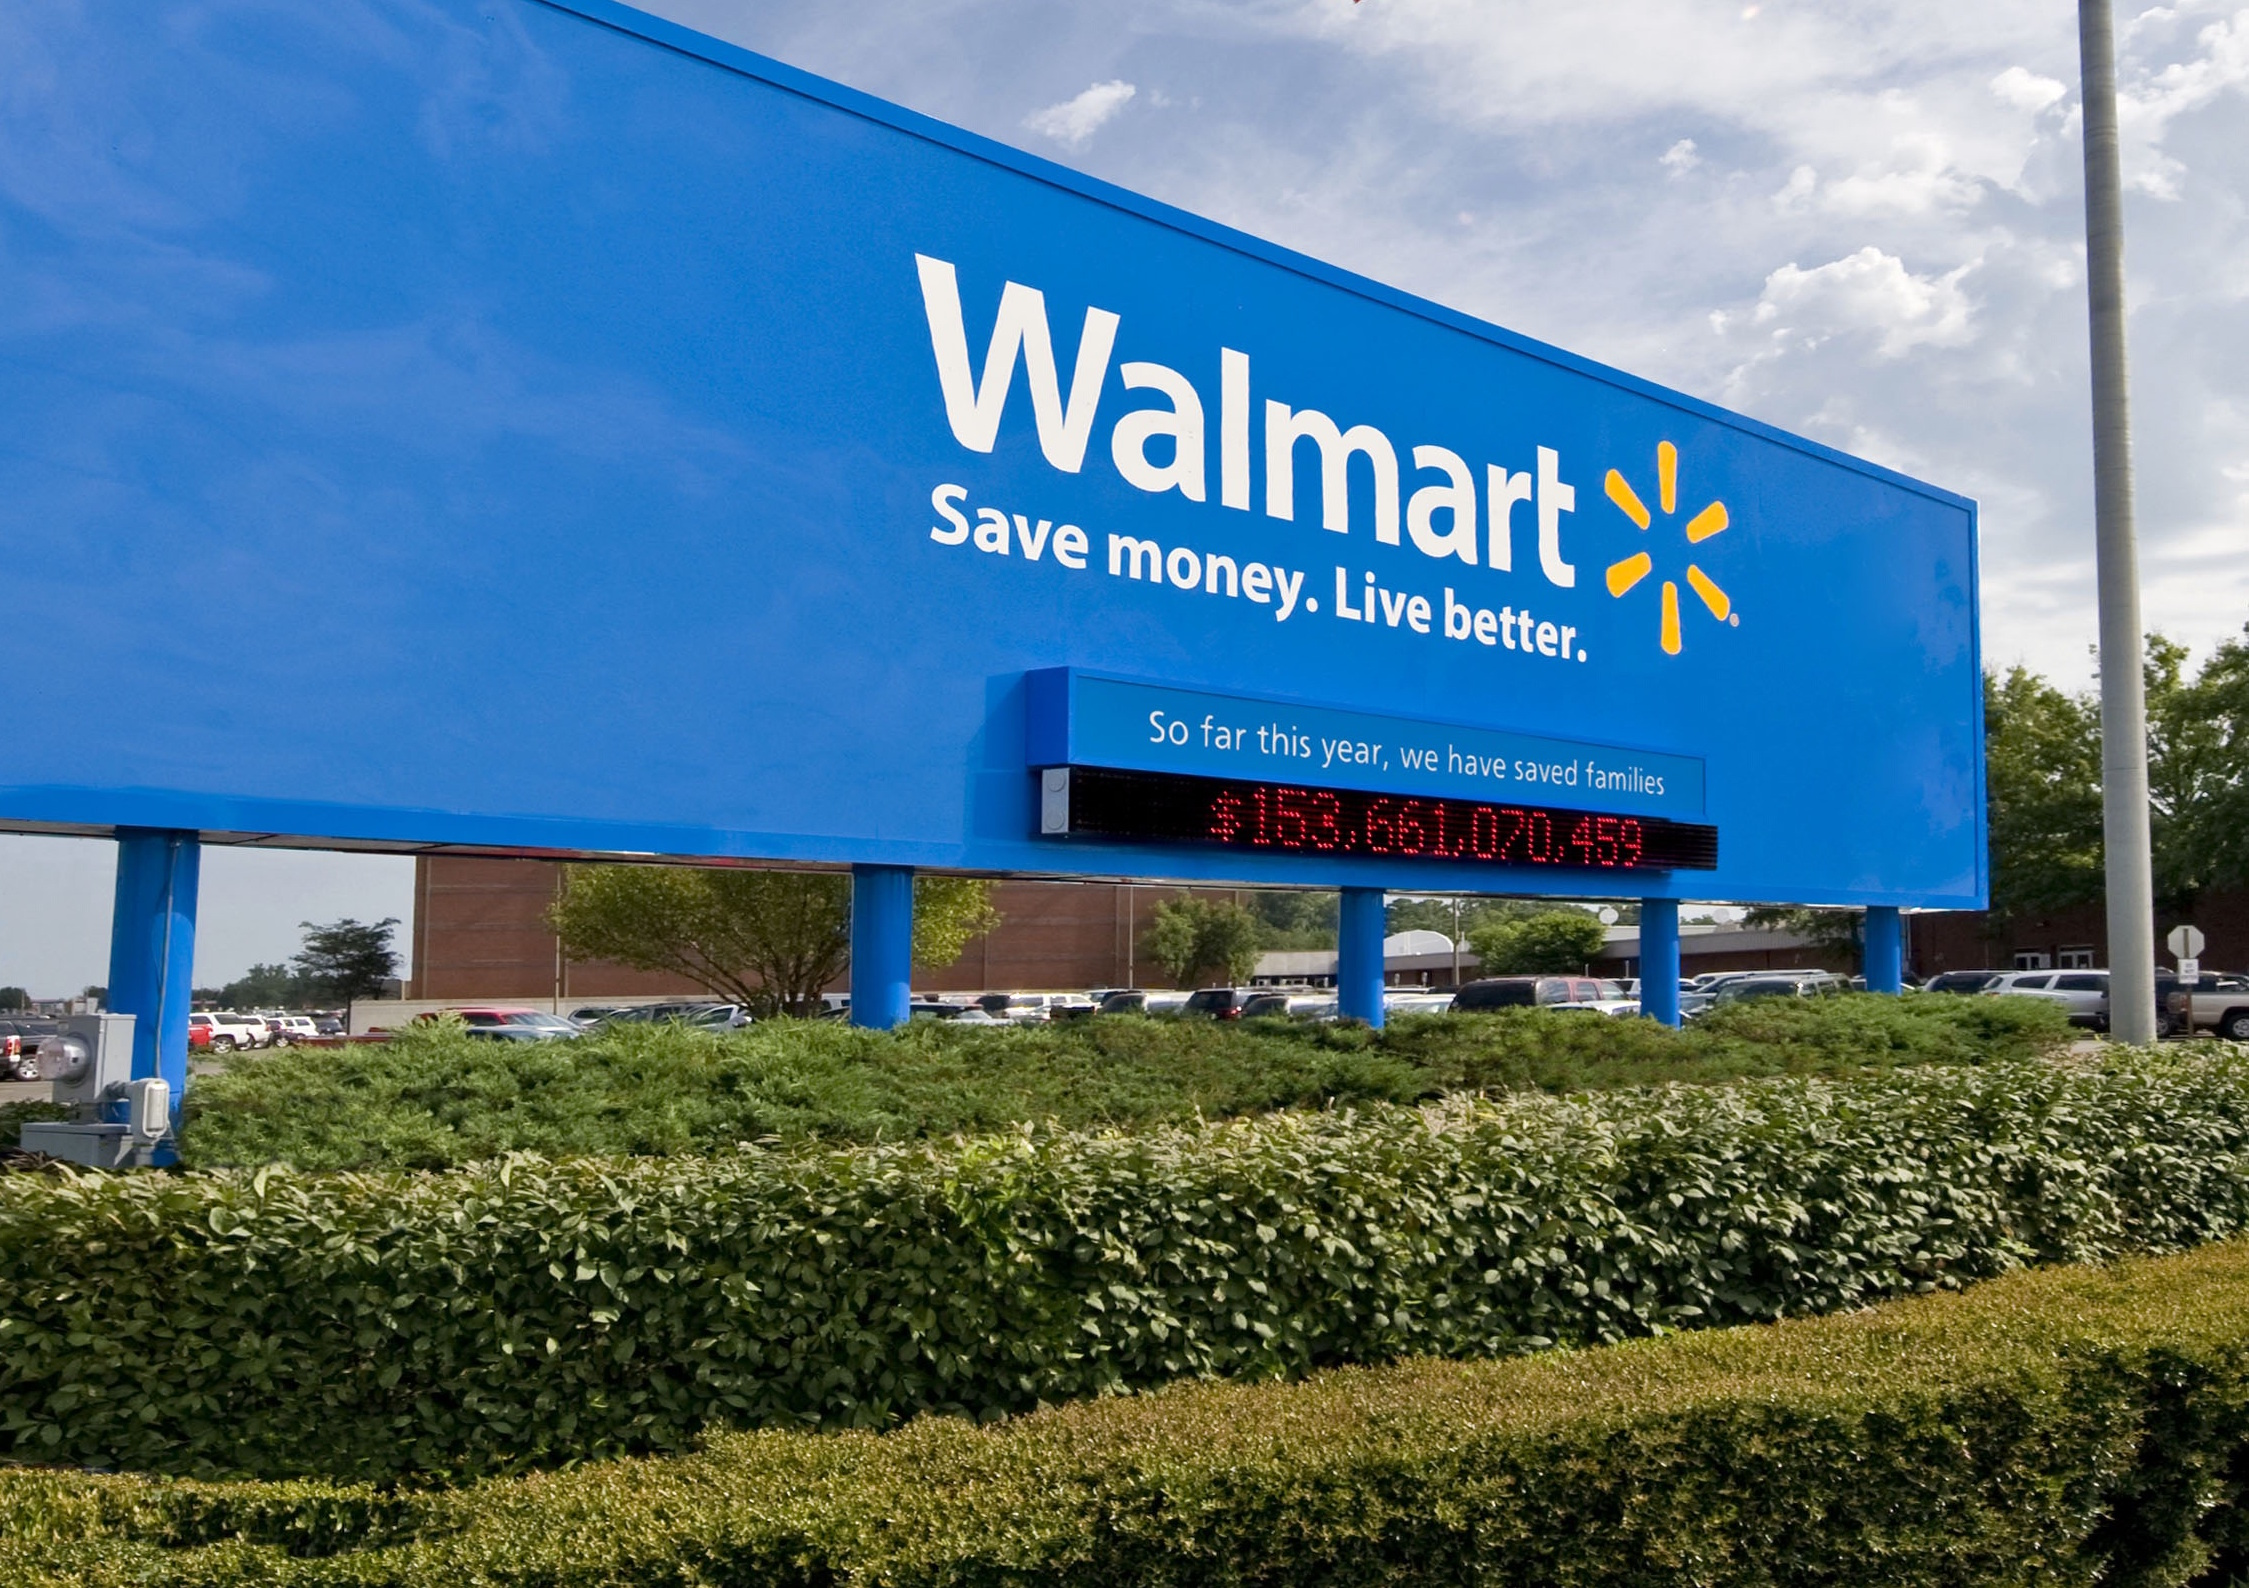 Wal-Mart boosts starting pay to $11 an hour, offers bonuses